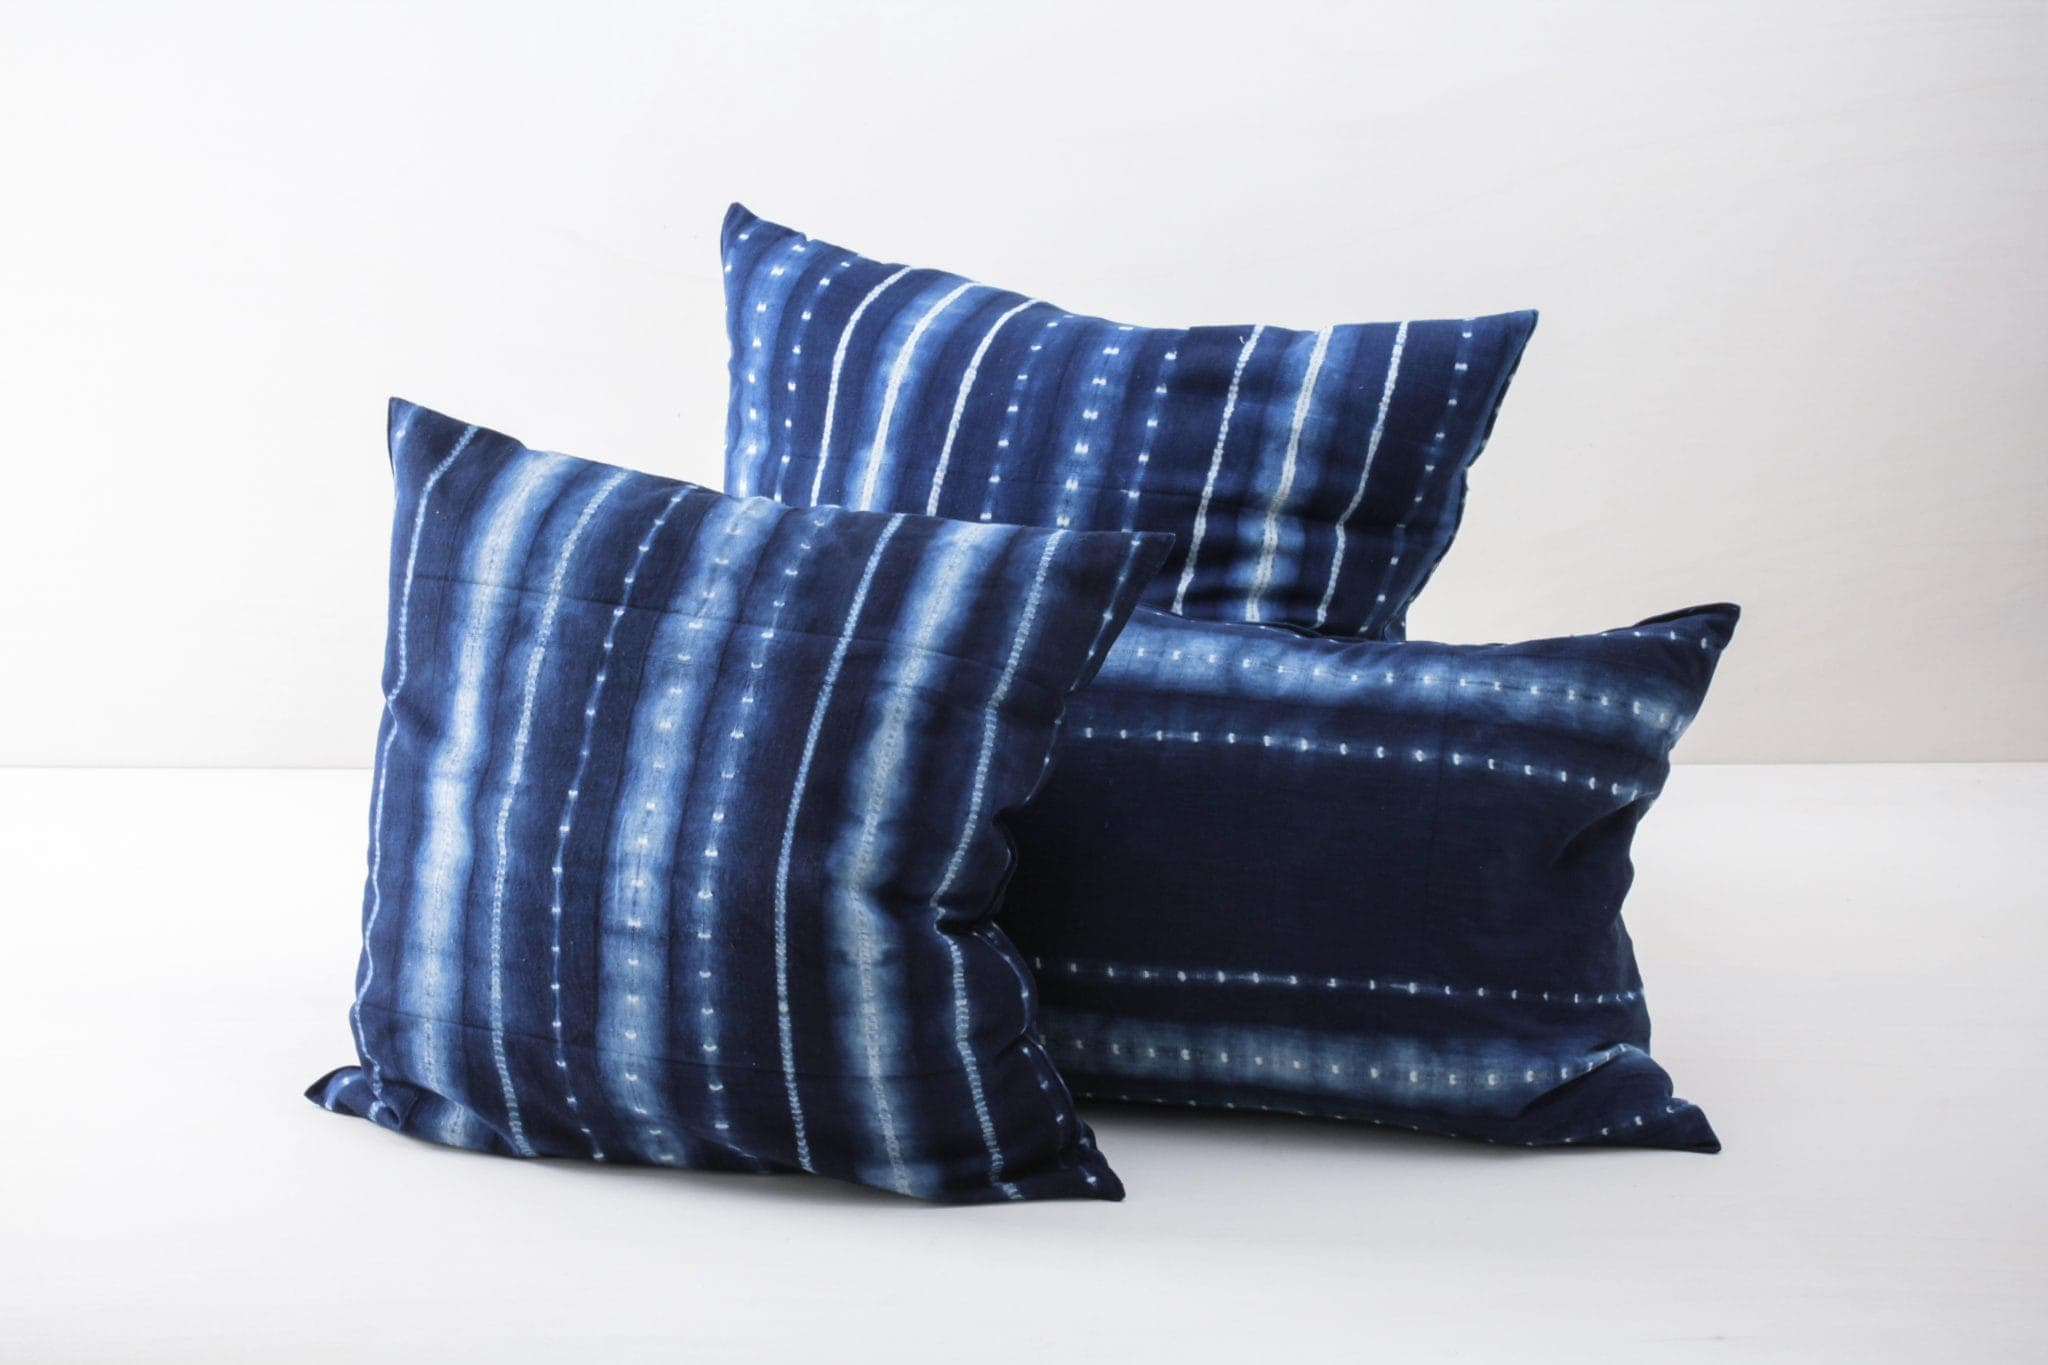 Pillow Vicente Indigo 40x60 | Soft, handwoven, Indigo hand dyed cotton with it's origin in Guinea. Those pillows are super cosy. | gotvintage Rental & Event Design